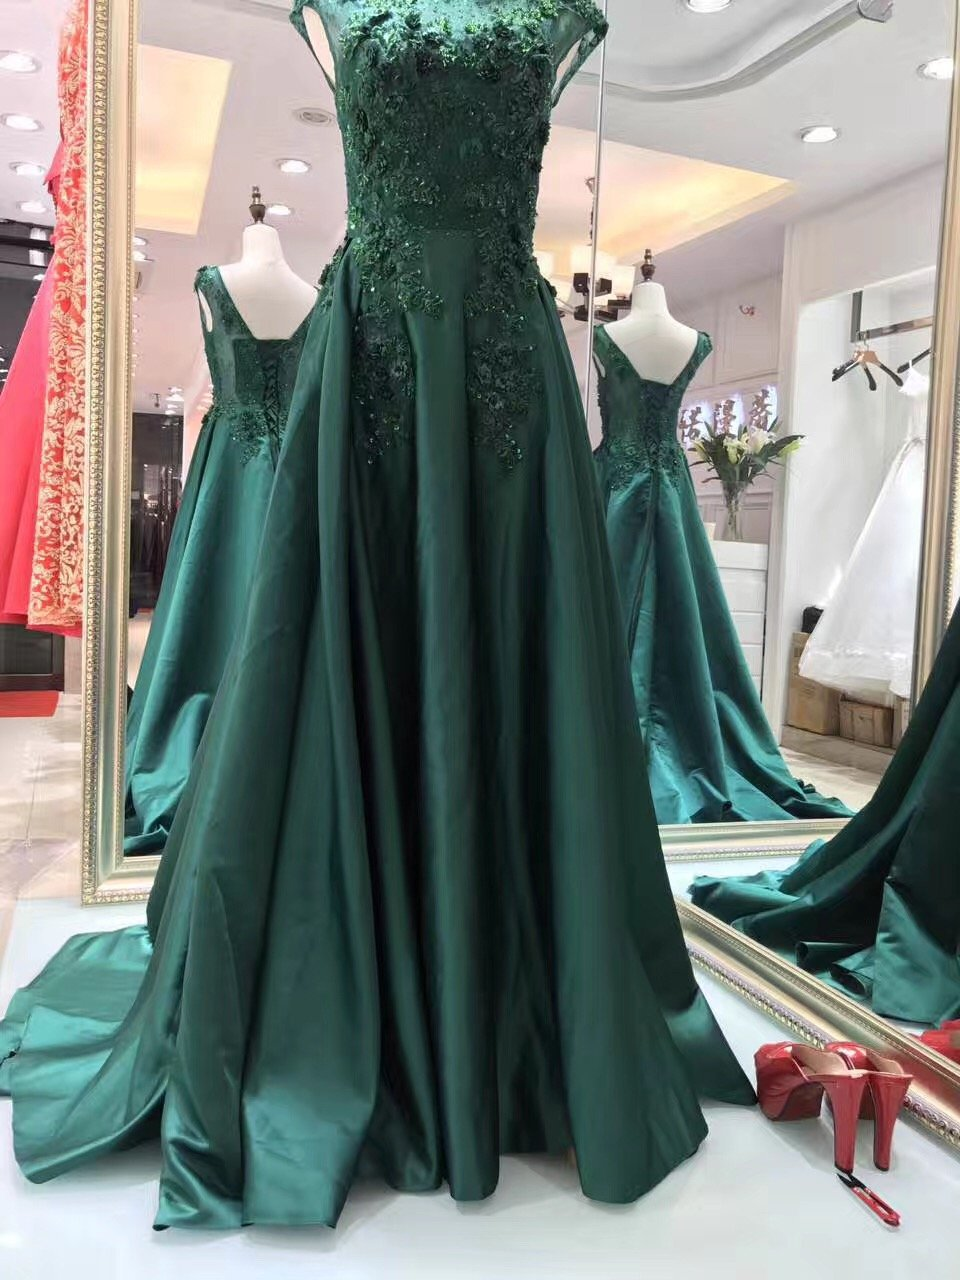 New Luxury Satin Long Evening Dress The Bride Banquet Sleeveless Lace Flower Beading Prom Formal Gown-Dress-SheSimplyShops